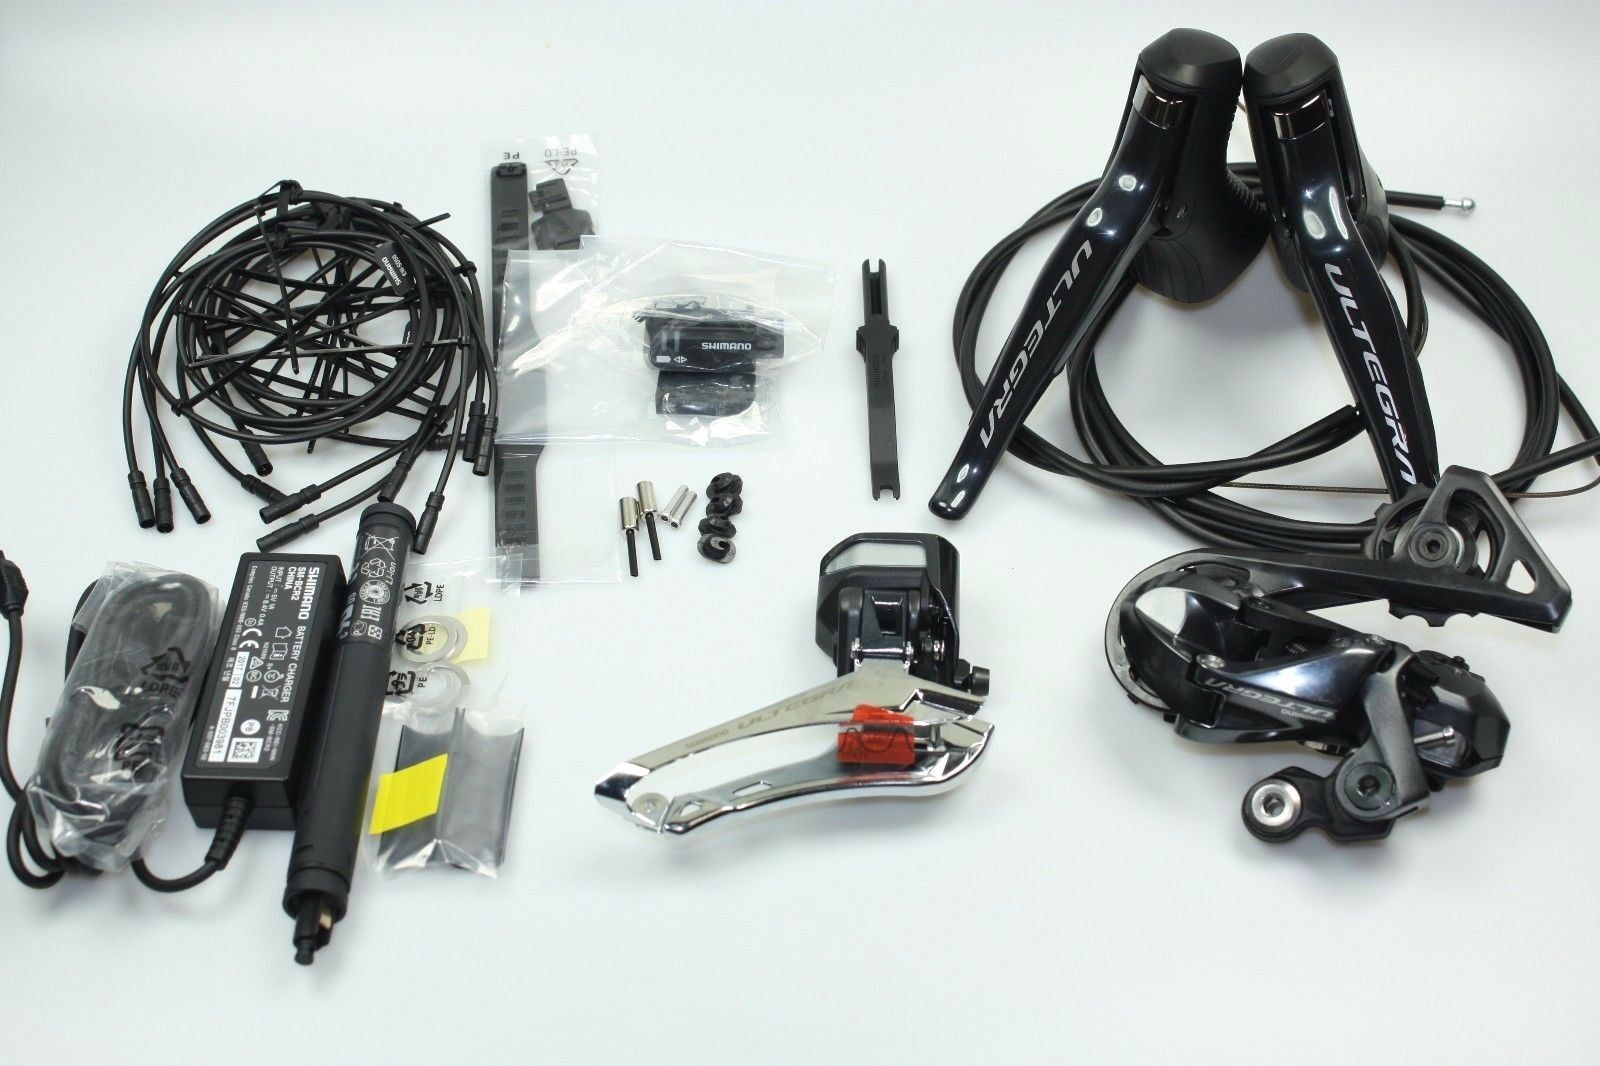 SALE   2019 Shimano Ultegra R8050  Di2 Electronic 11s Group Upgrade Kit INTERNAL  excellent prices